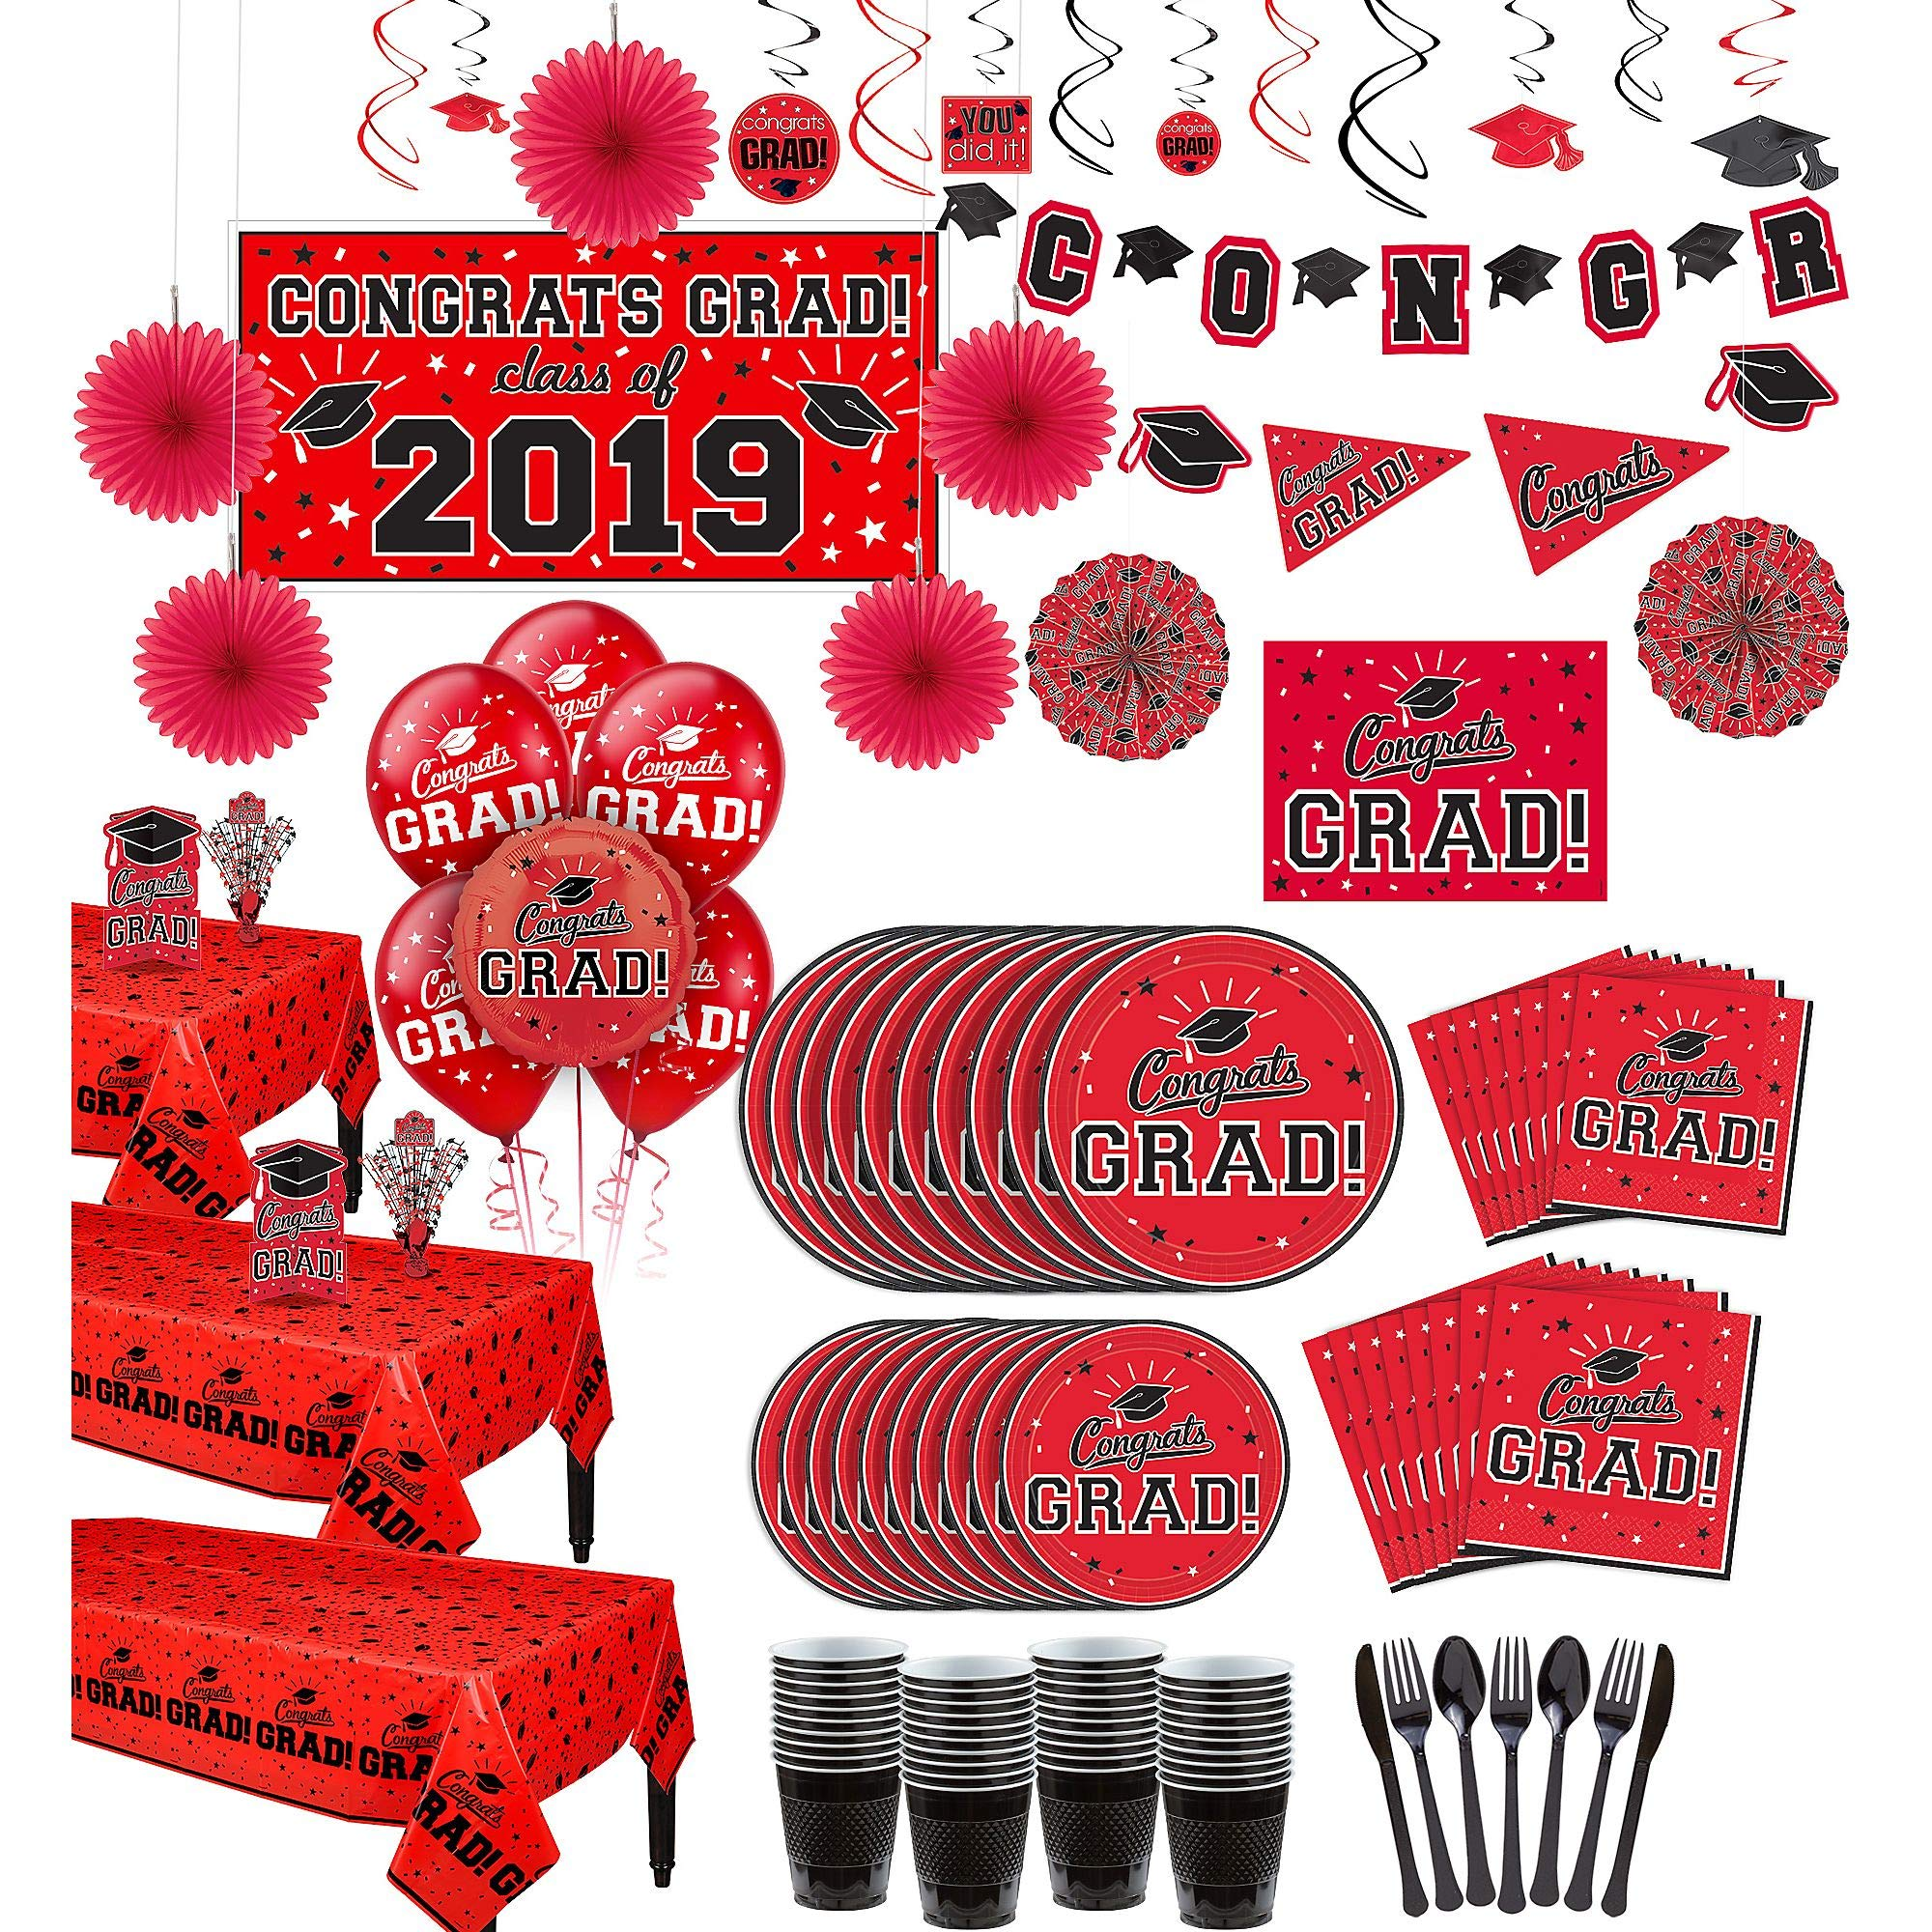 Party City Super Congrats Grad Red 2019 Graduation Party Supplies for 54 Guests with Banner, Tableware and Balloons